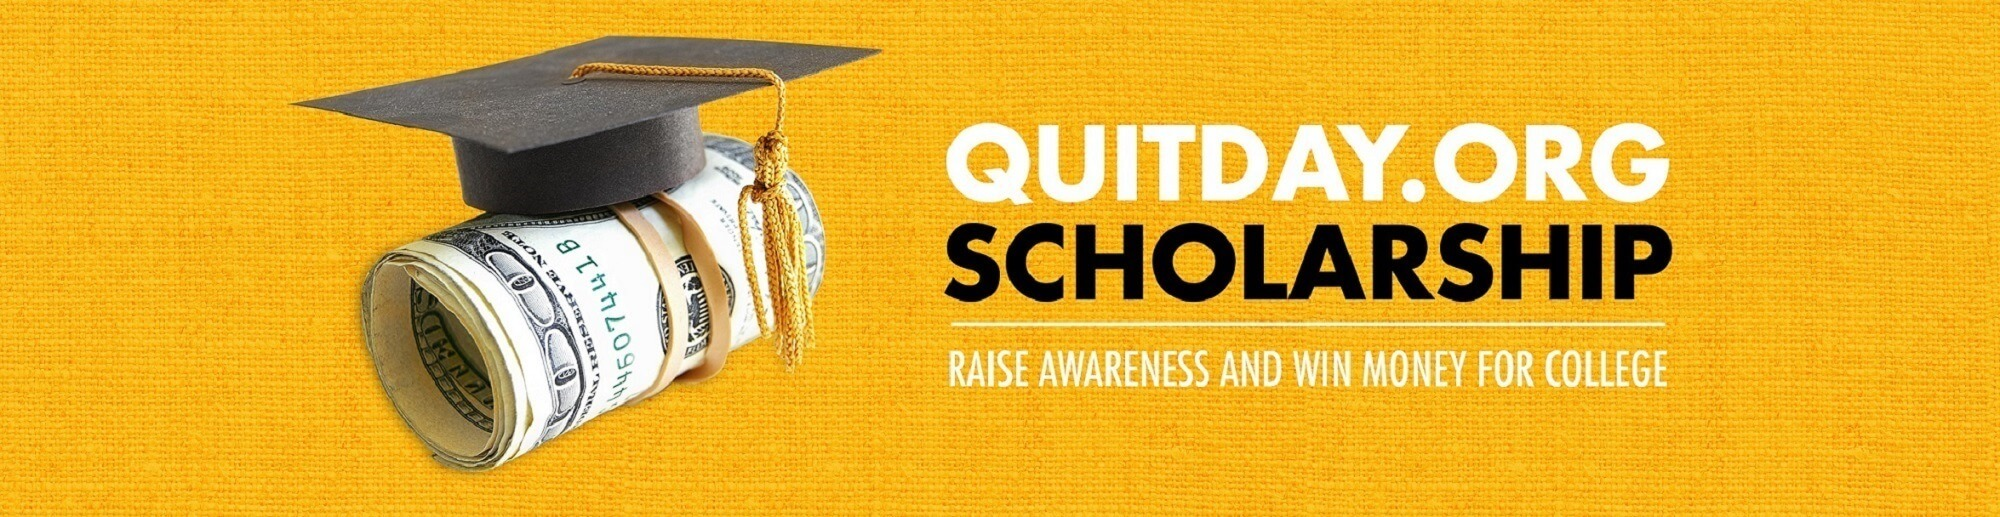 QuitDay.org-scholarship-banner